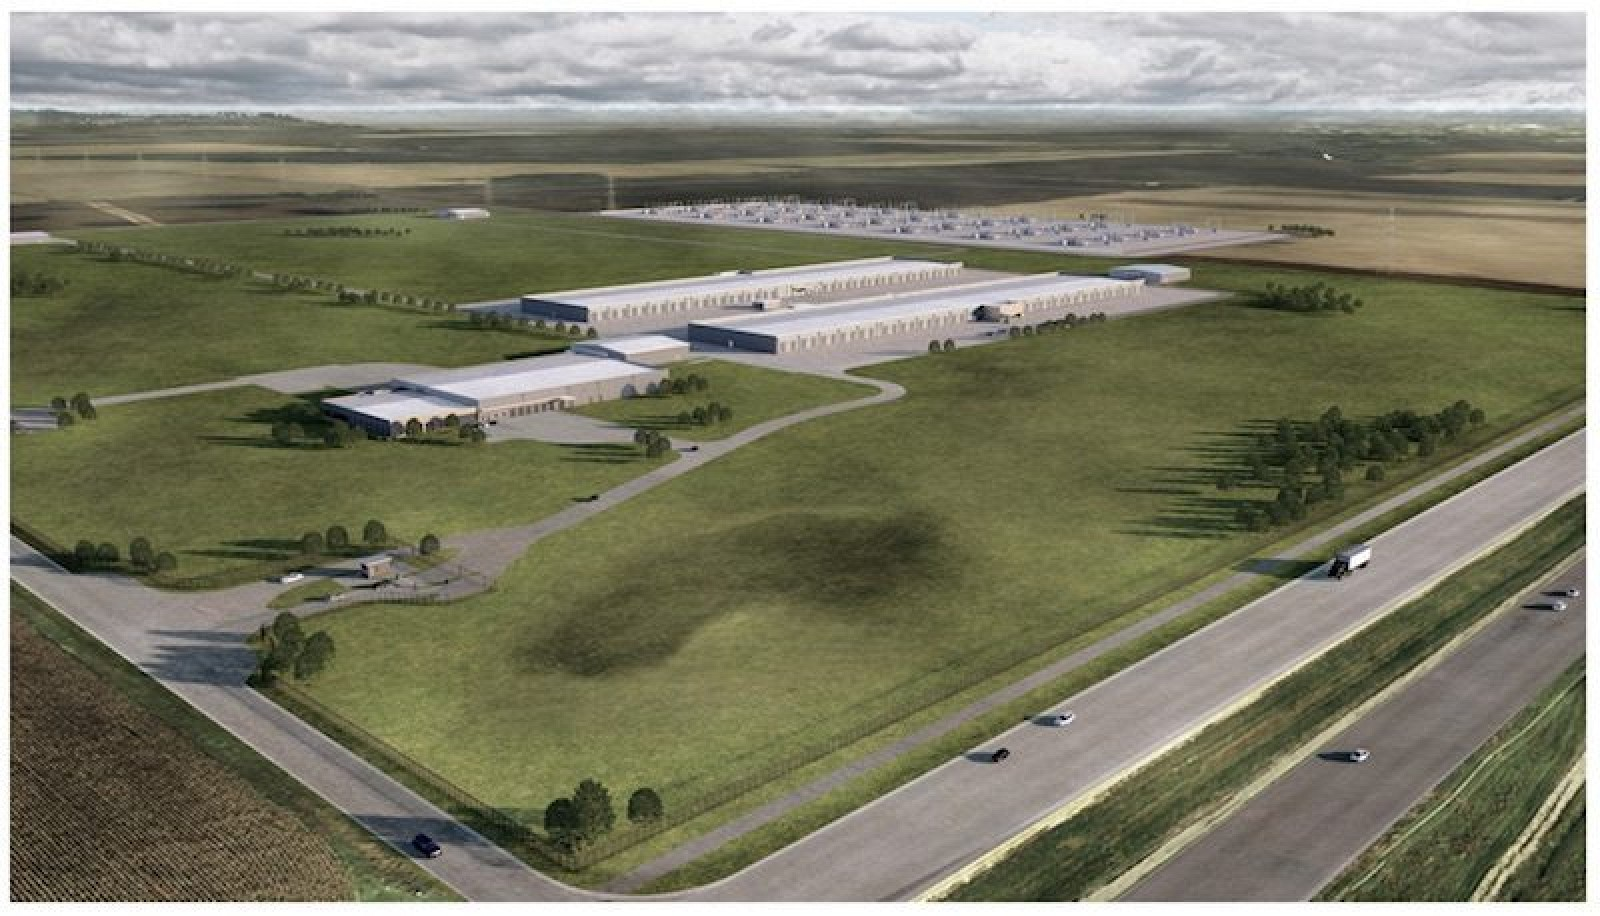 Apple Confirms Plans to Build Data Center in Iowa, Contribute Up to $100M to Community Projects